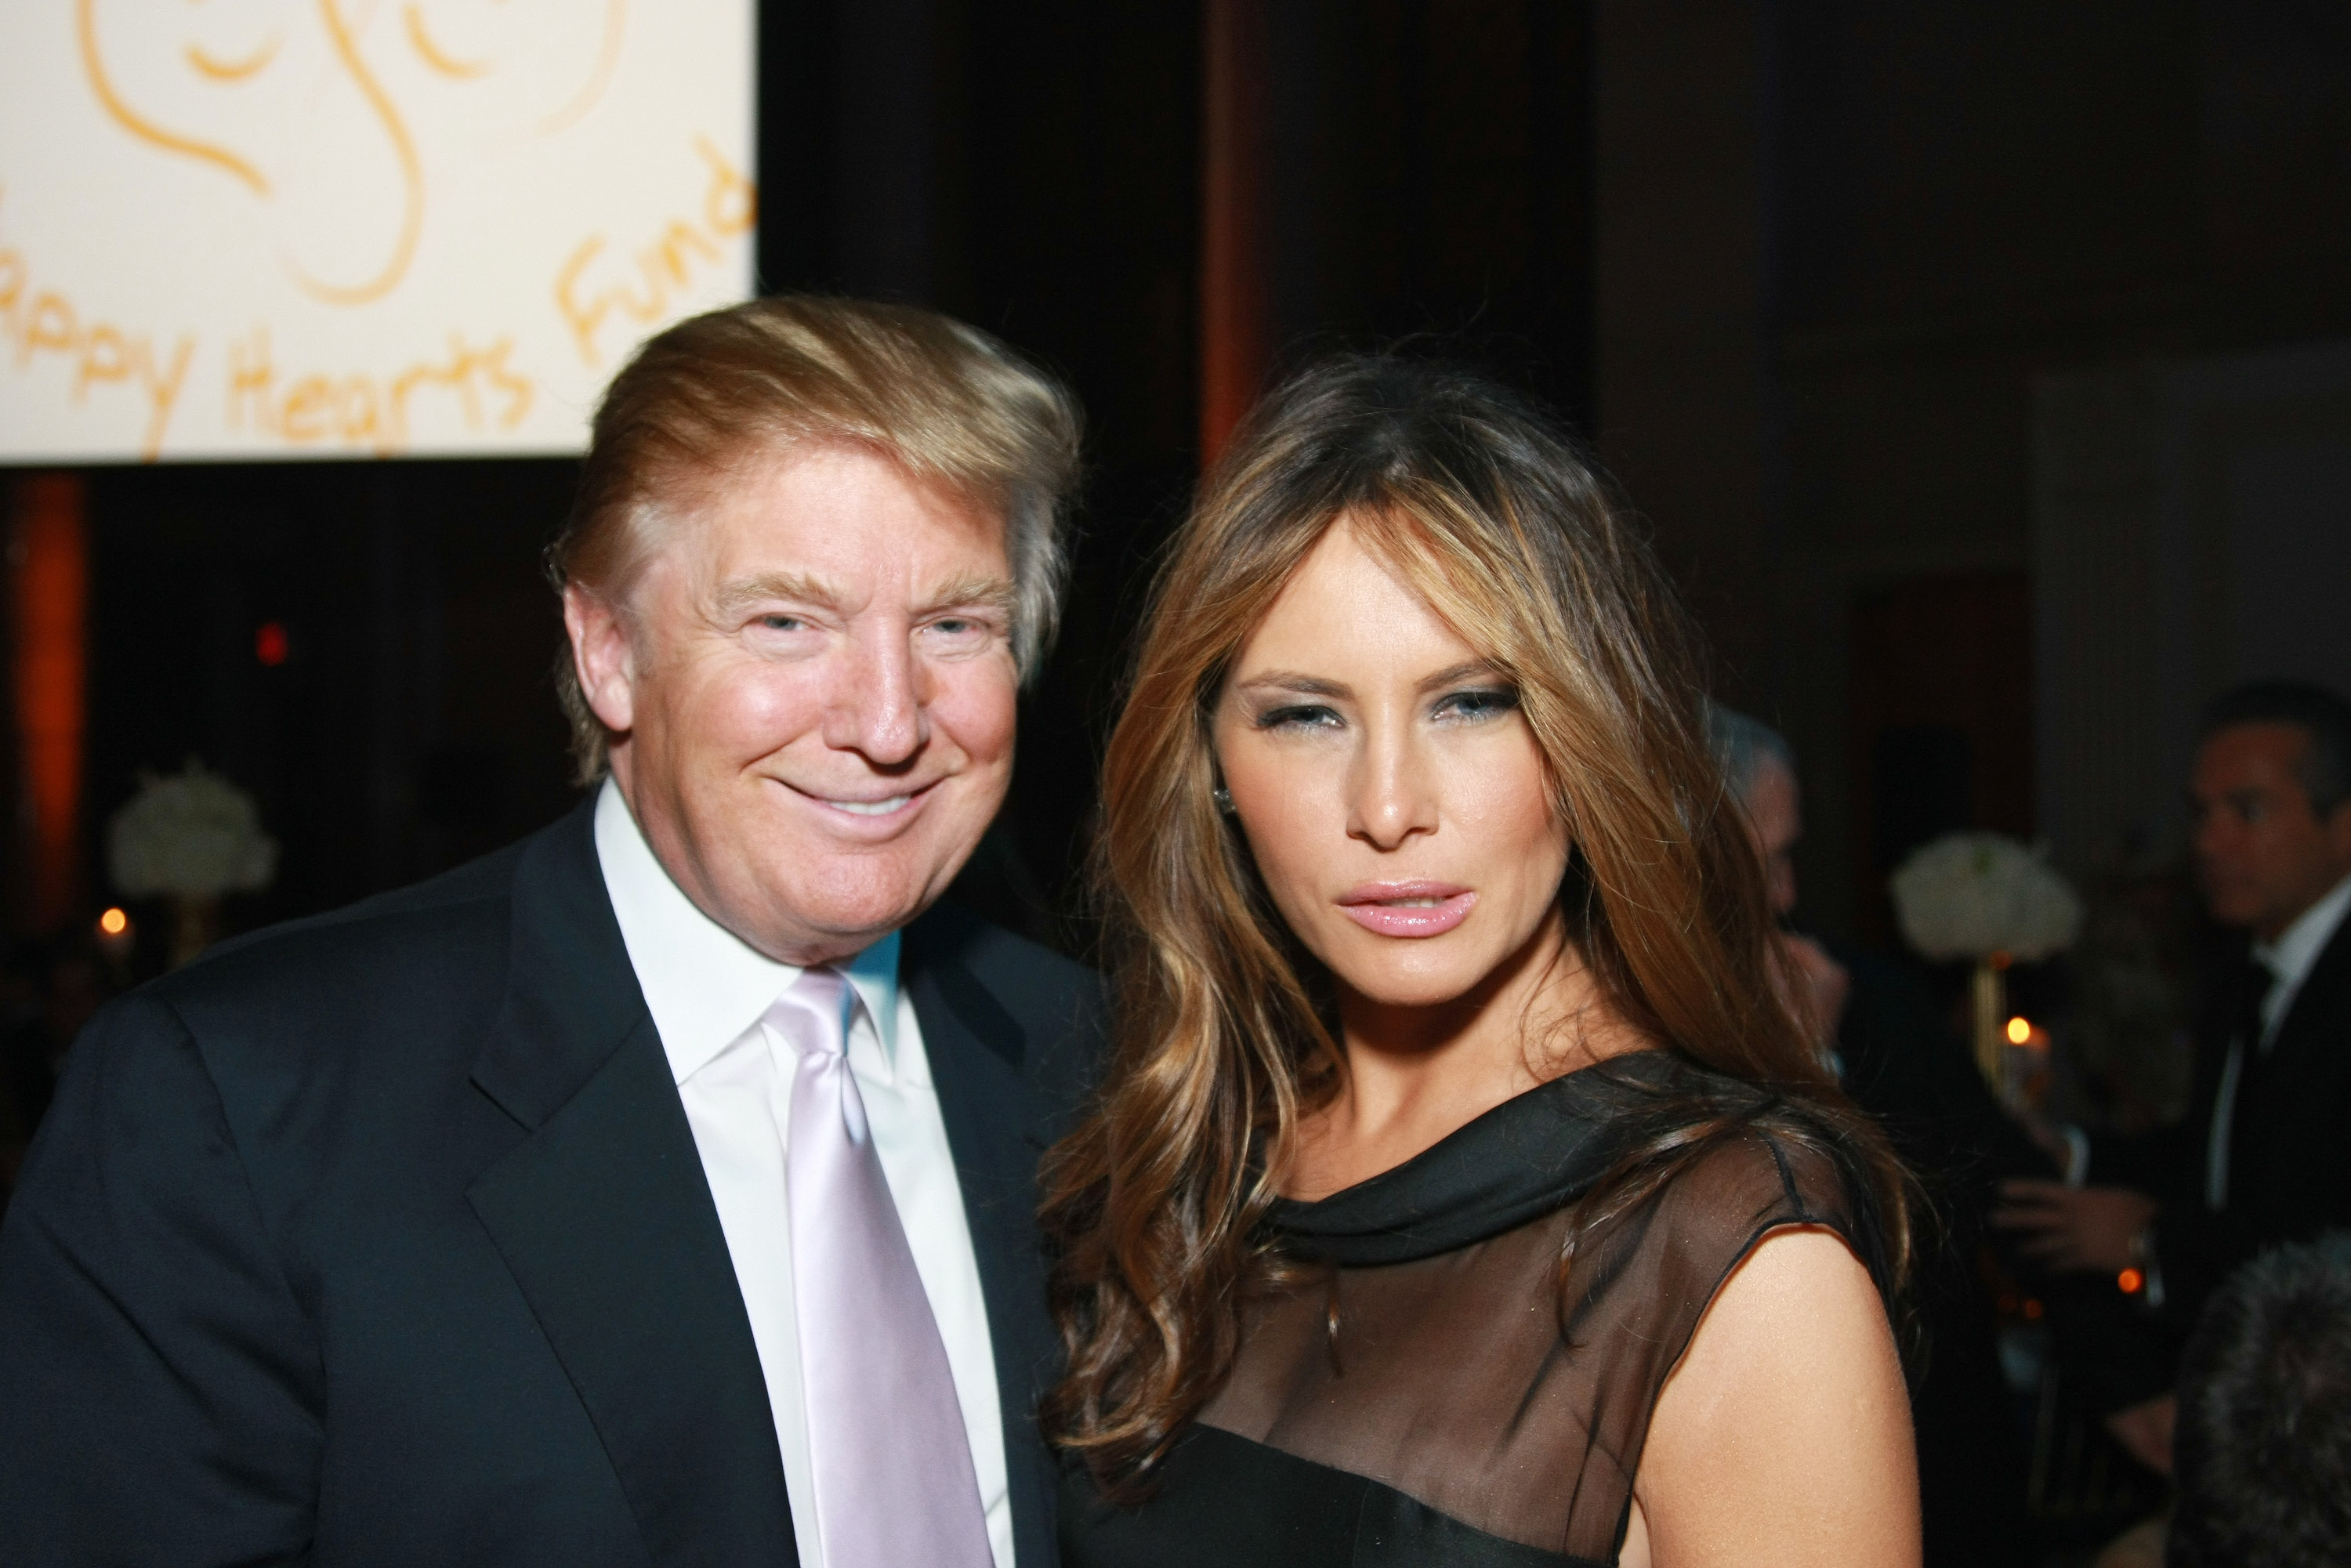 Melania Halloween Outfit 2020 Melania Trump & Donald Trump Couples' Costume Ideas That You Can